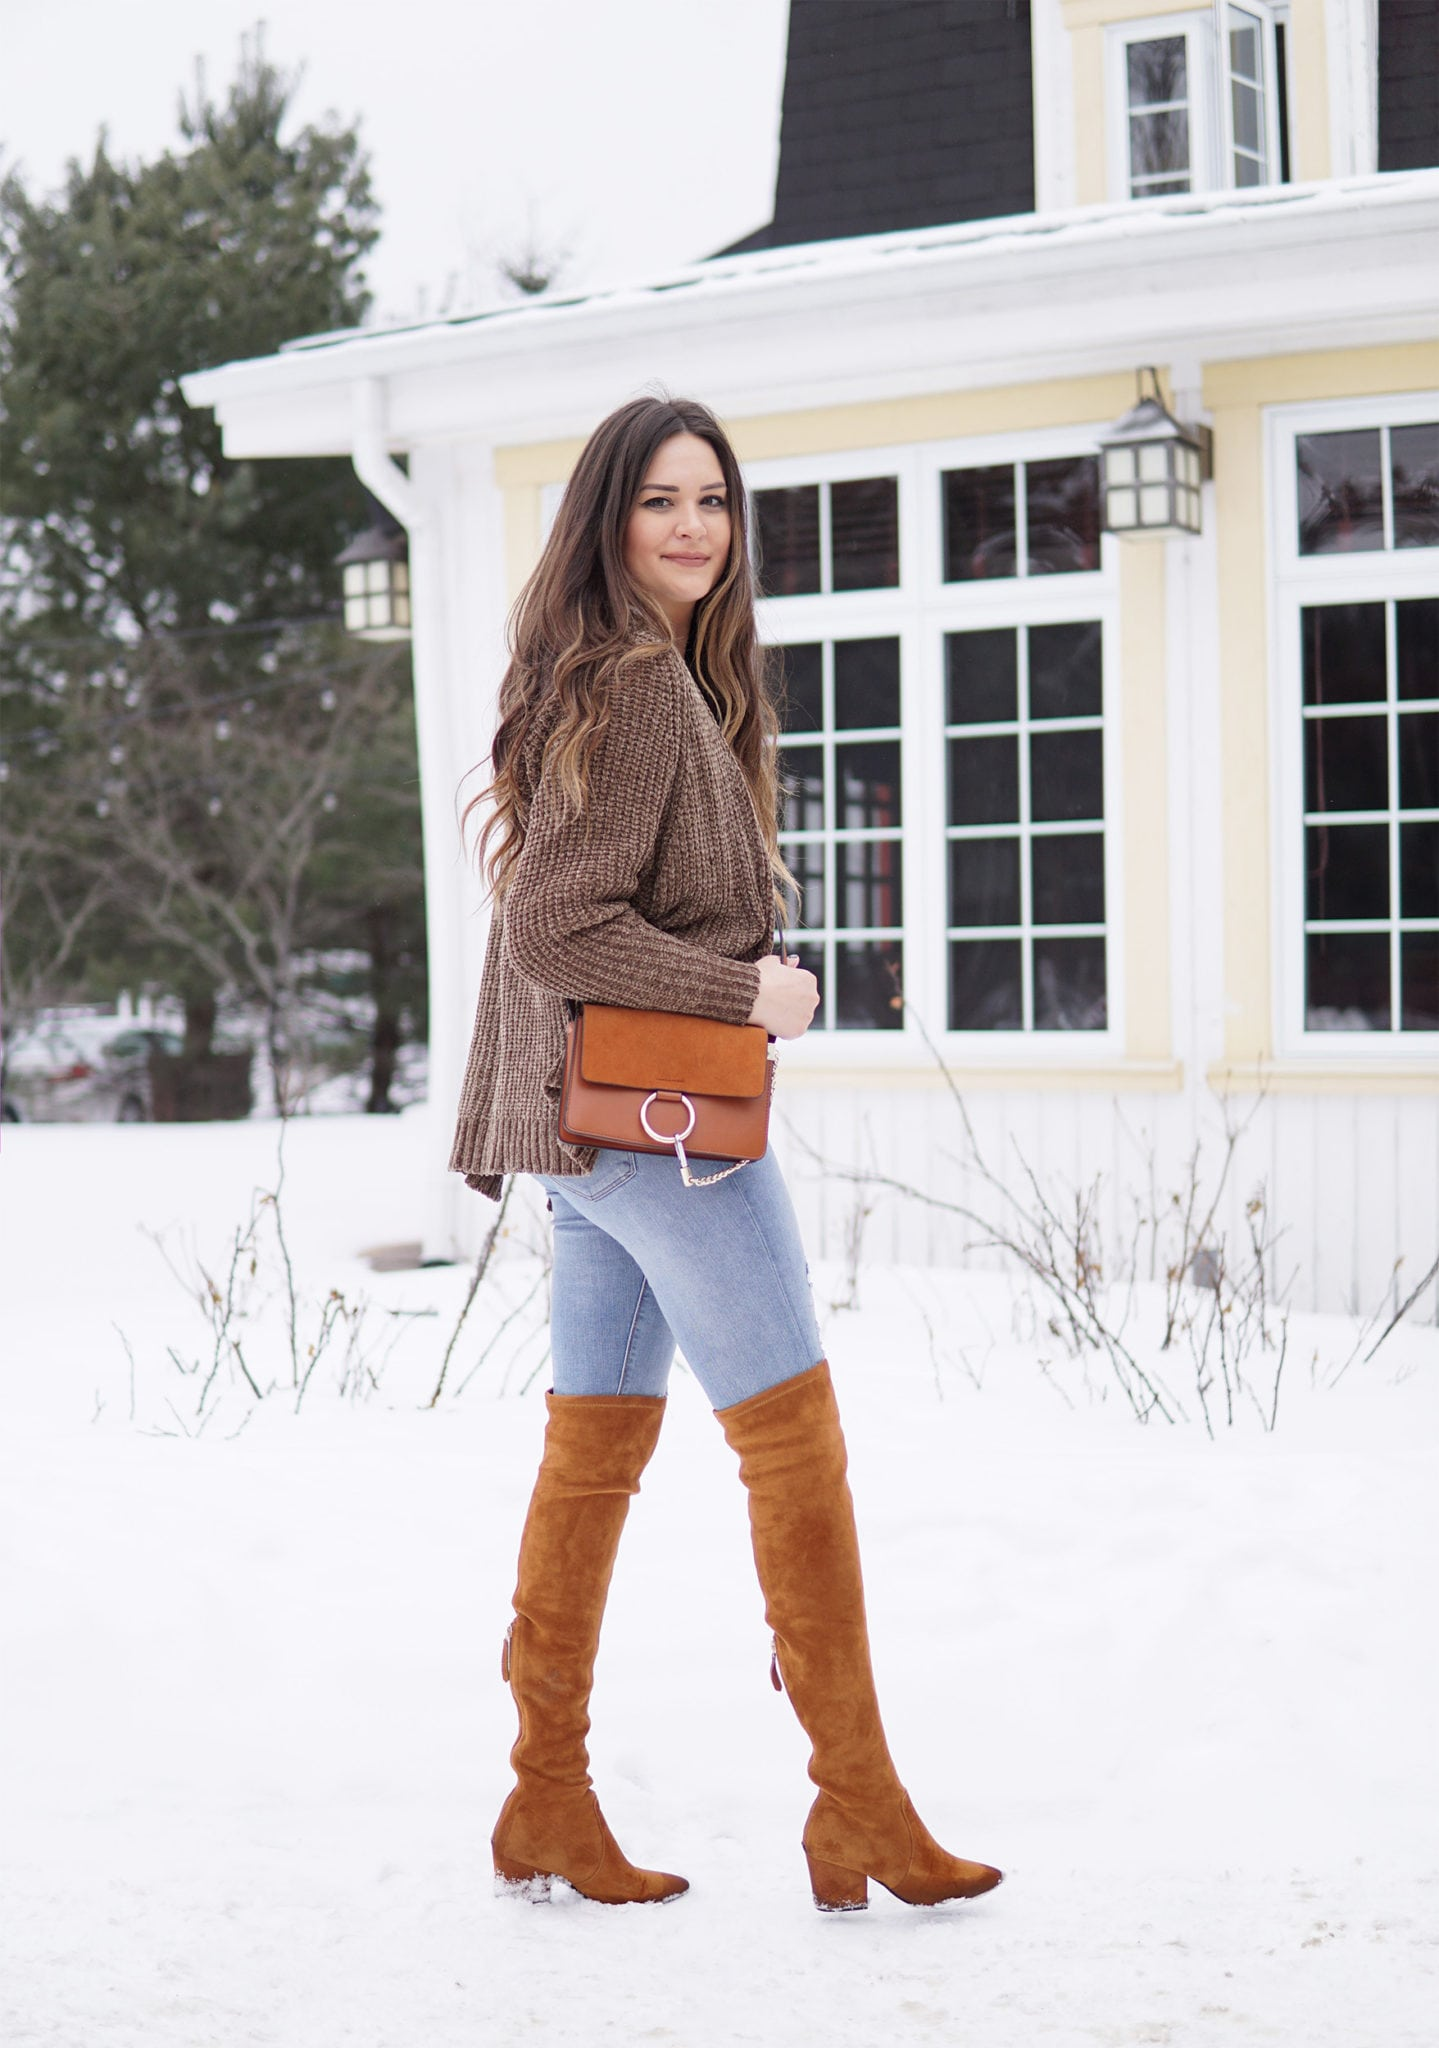 Mash Elle holding the Chloe dupe bag you need in winter